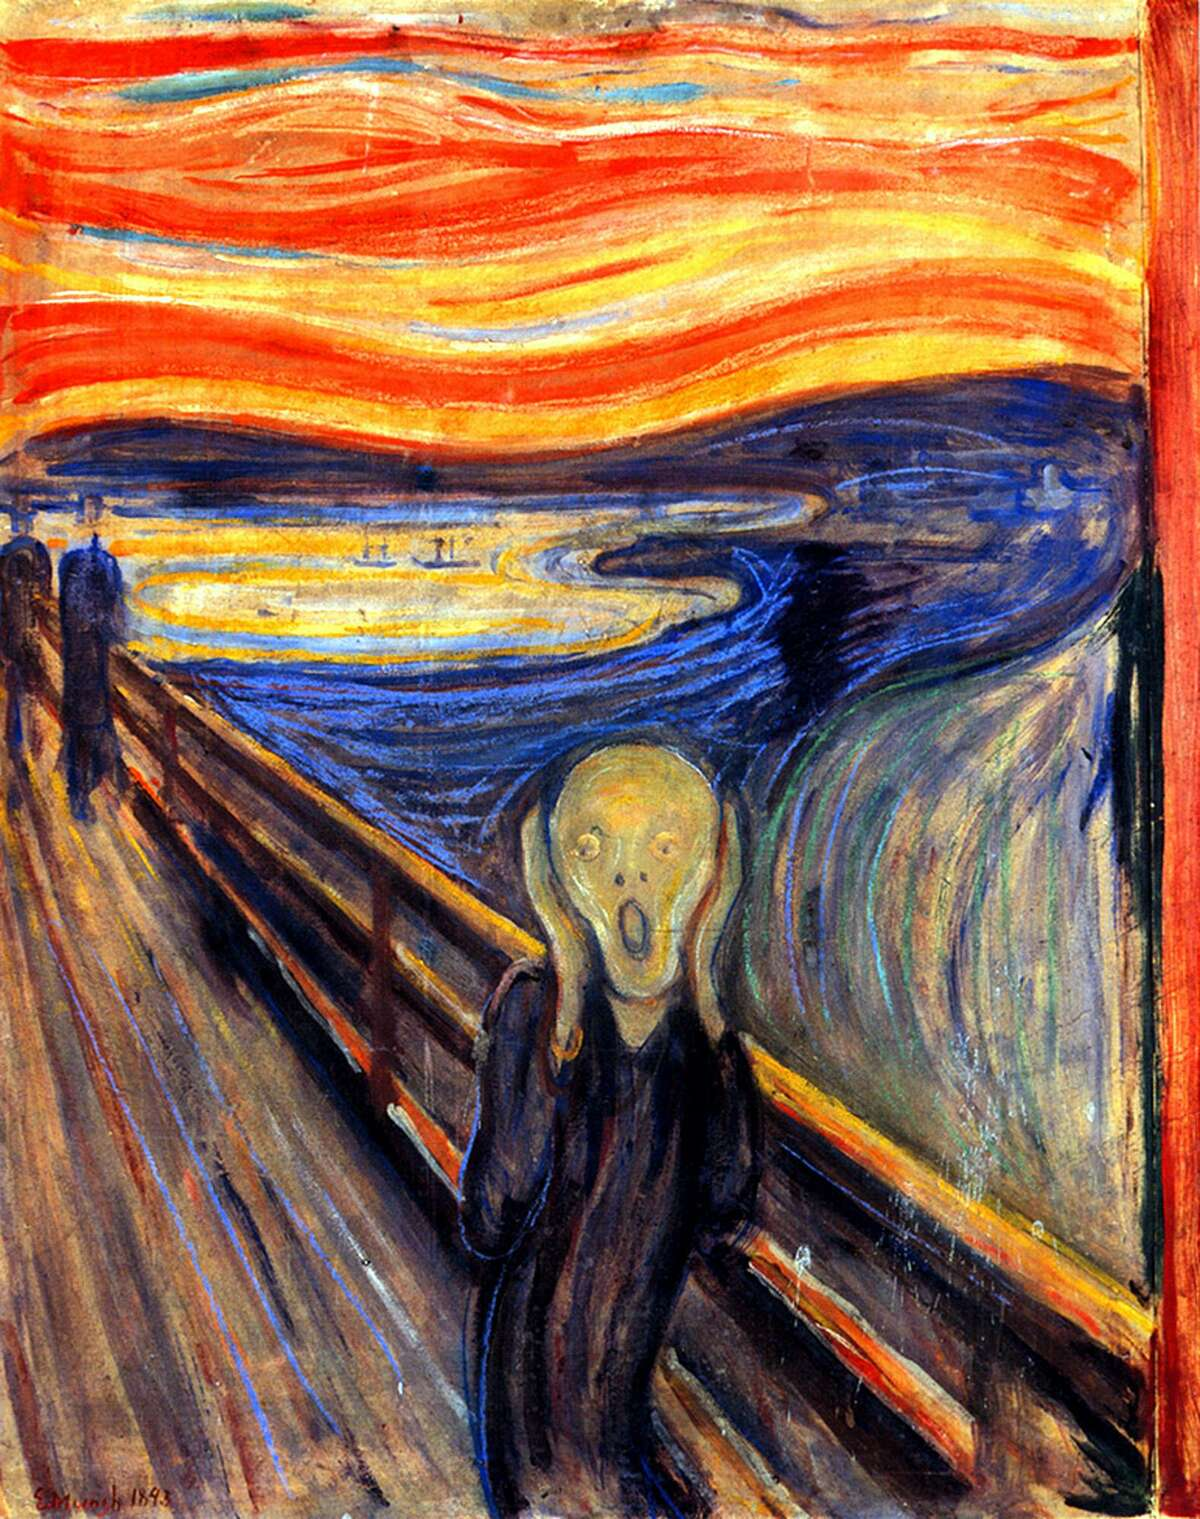 The Scream's background includes ships in the harbor and the skyline of Christiania (now Oslo), Norway, clues that allowed astronomer Donald W. Olson and his colleagues to determine when and where Munch became filled with anxiety. The vivid sunset was caused by upper atmospheric dust from a volcano.